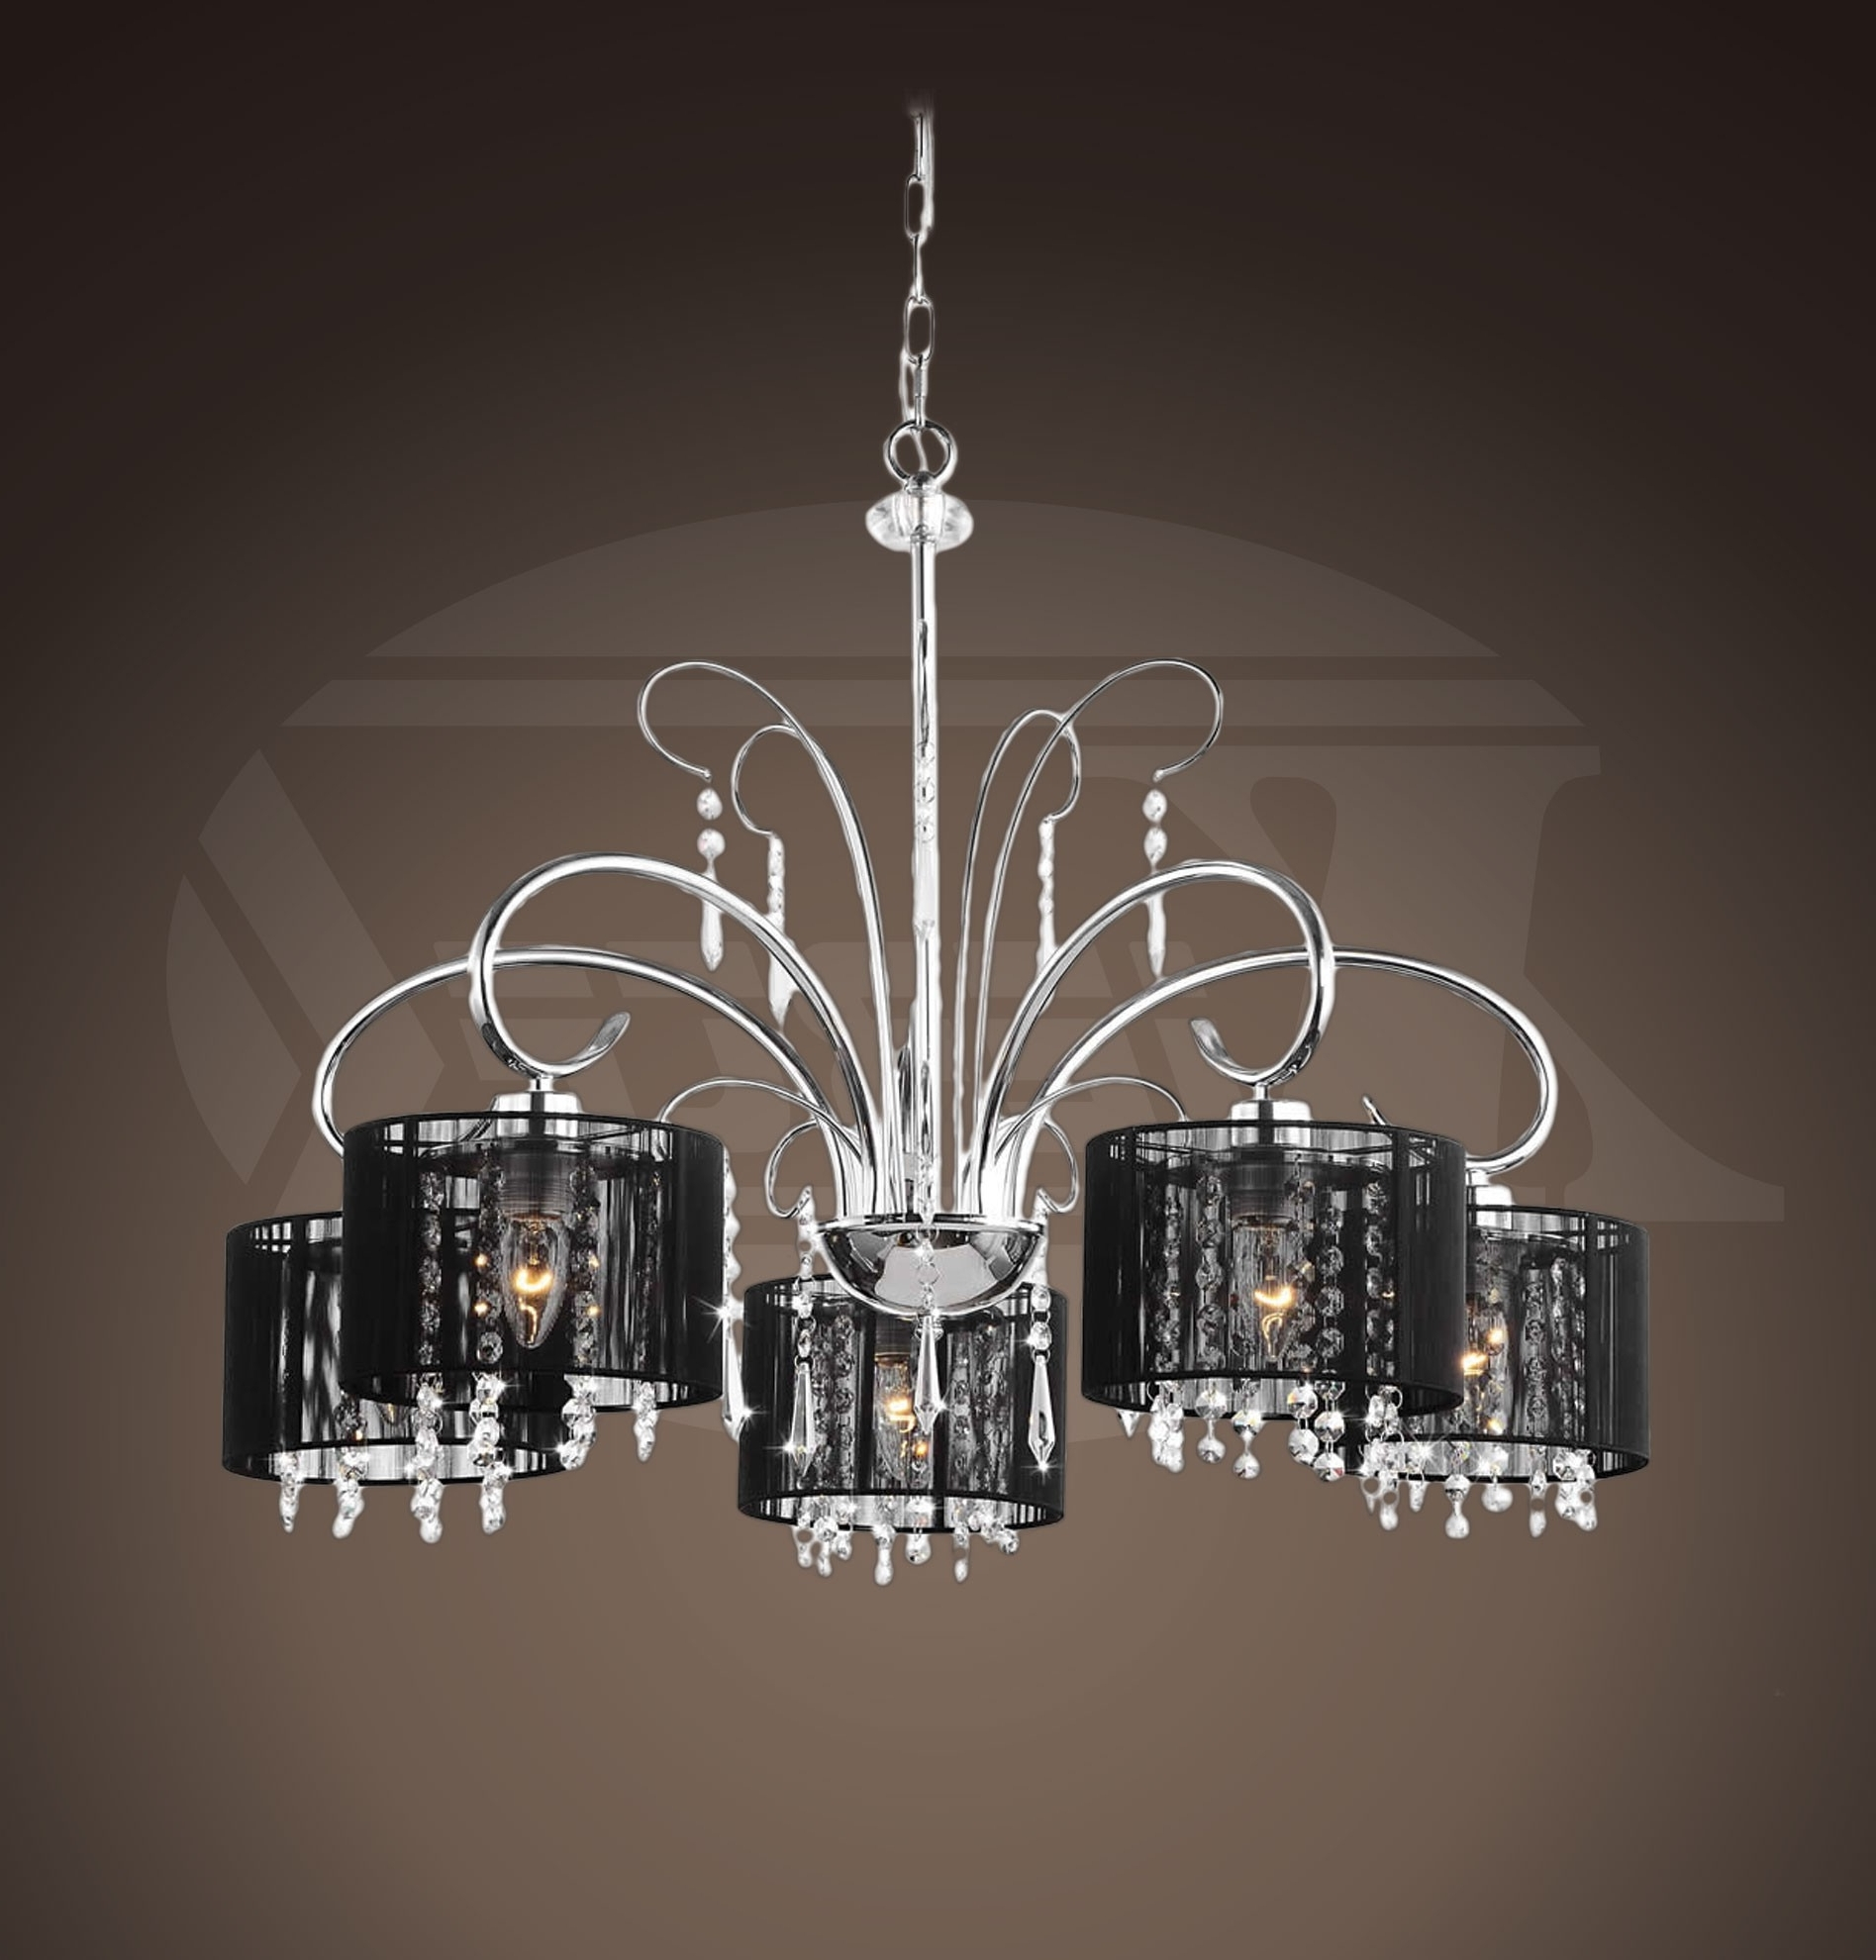 Trendy Black Chandeliers With Shades Intended For Aegean Black Shade 5 Light Chrome Chandelier ( (View 12 of 15)